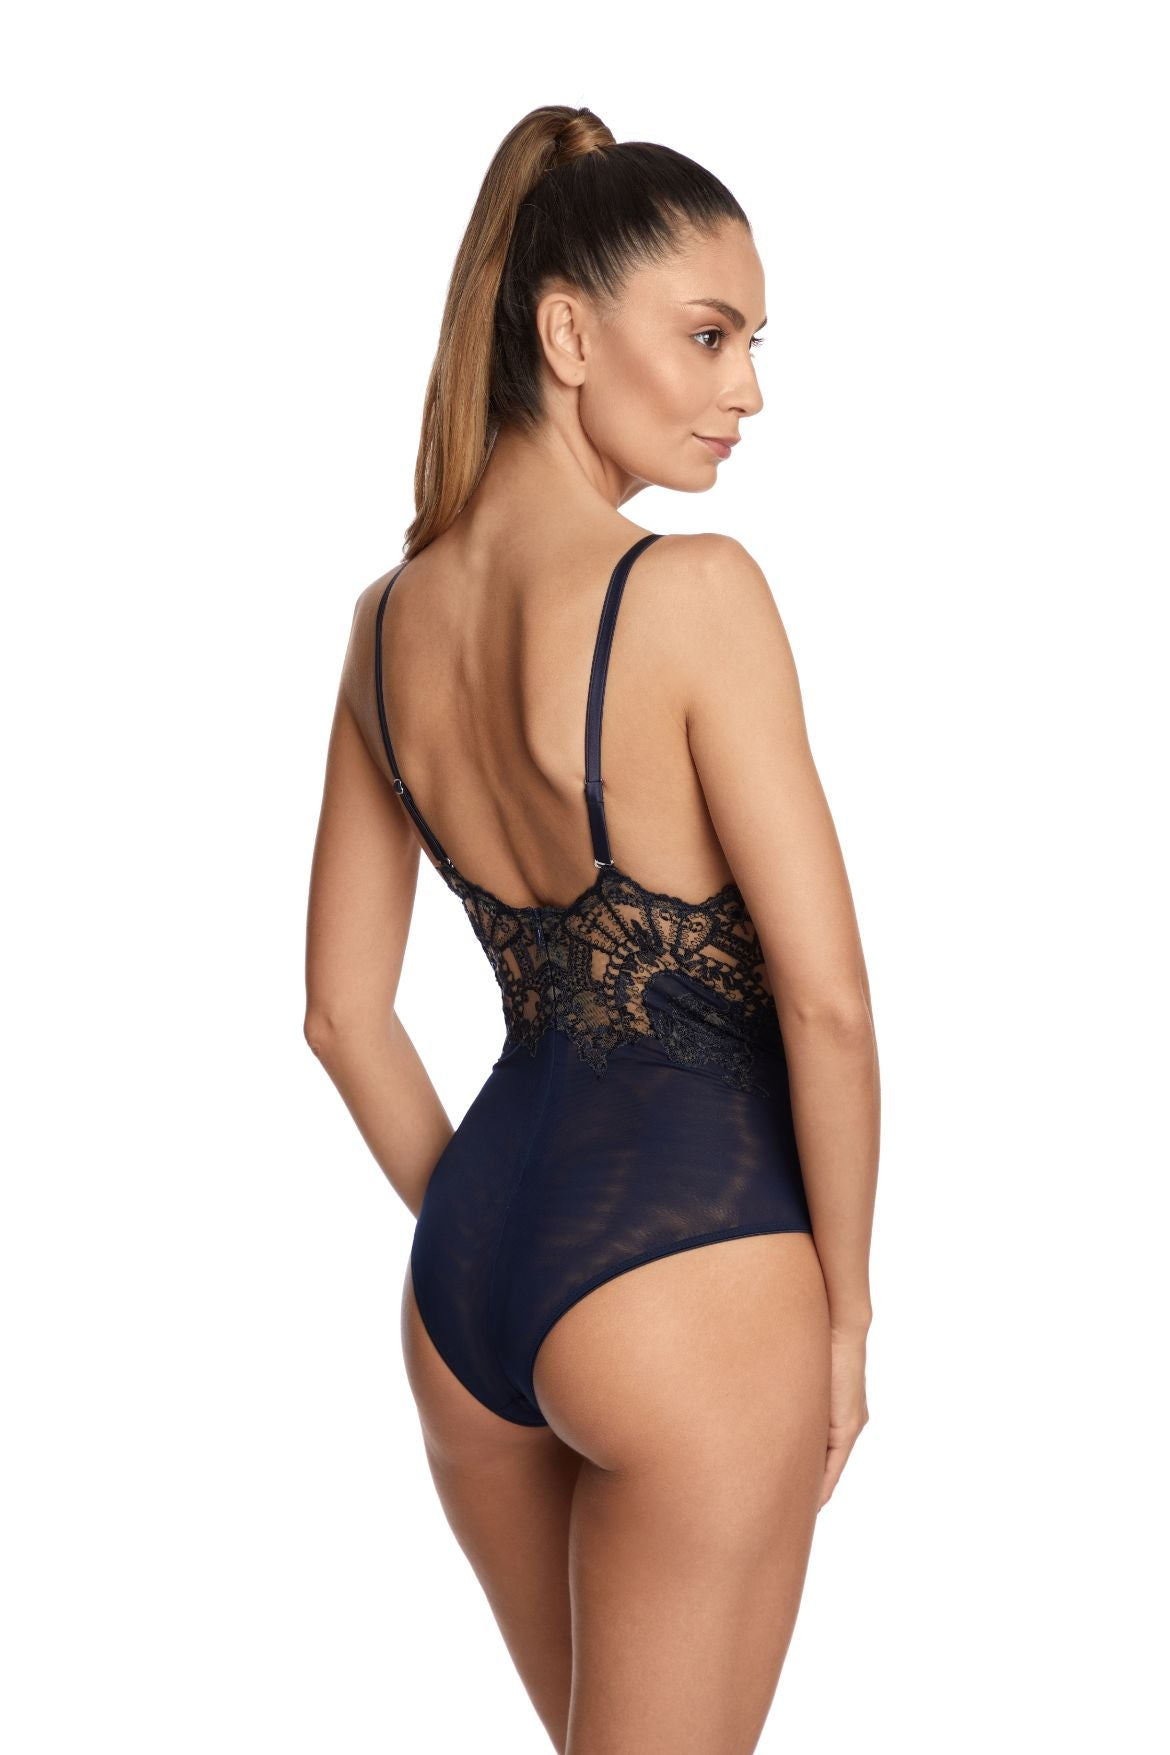 I.D. Sarrieri embroidered bodysuit in Bleumarine